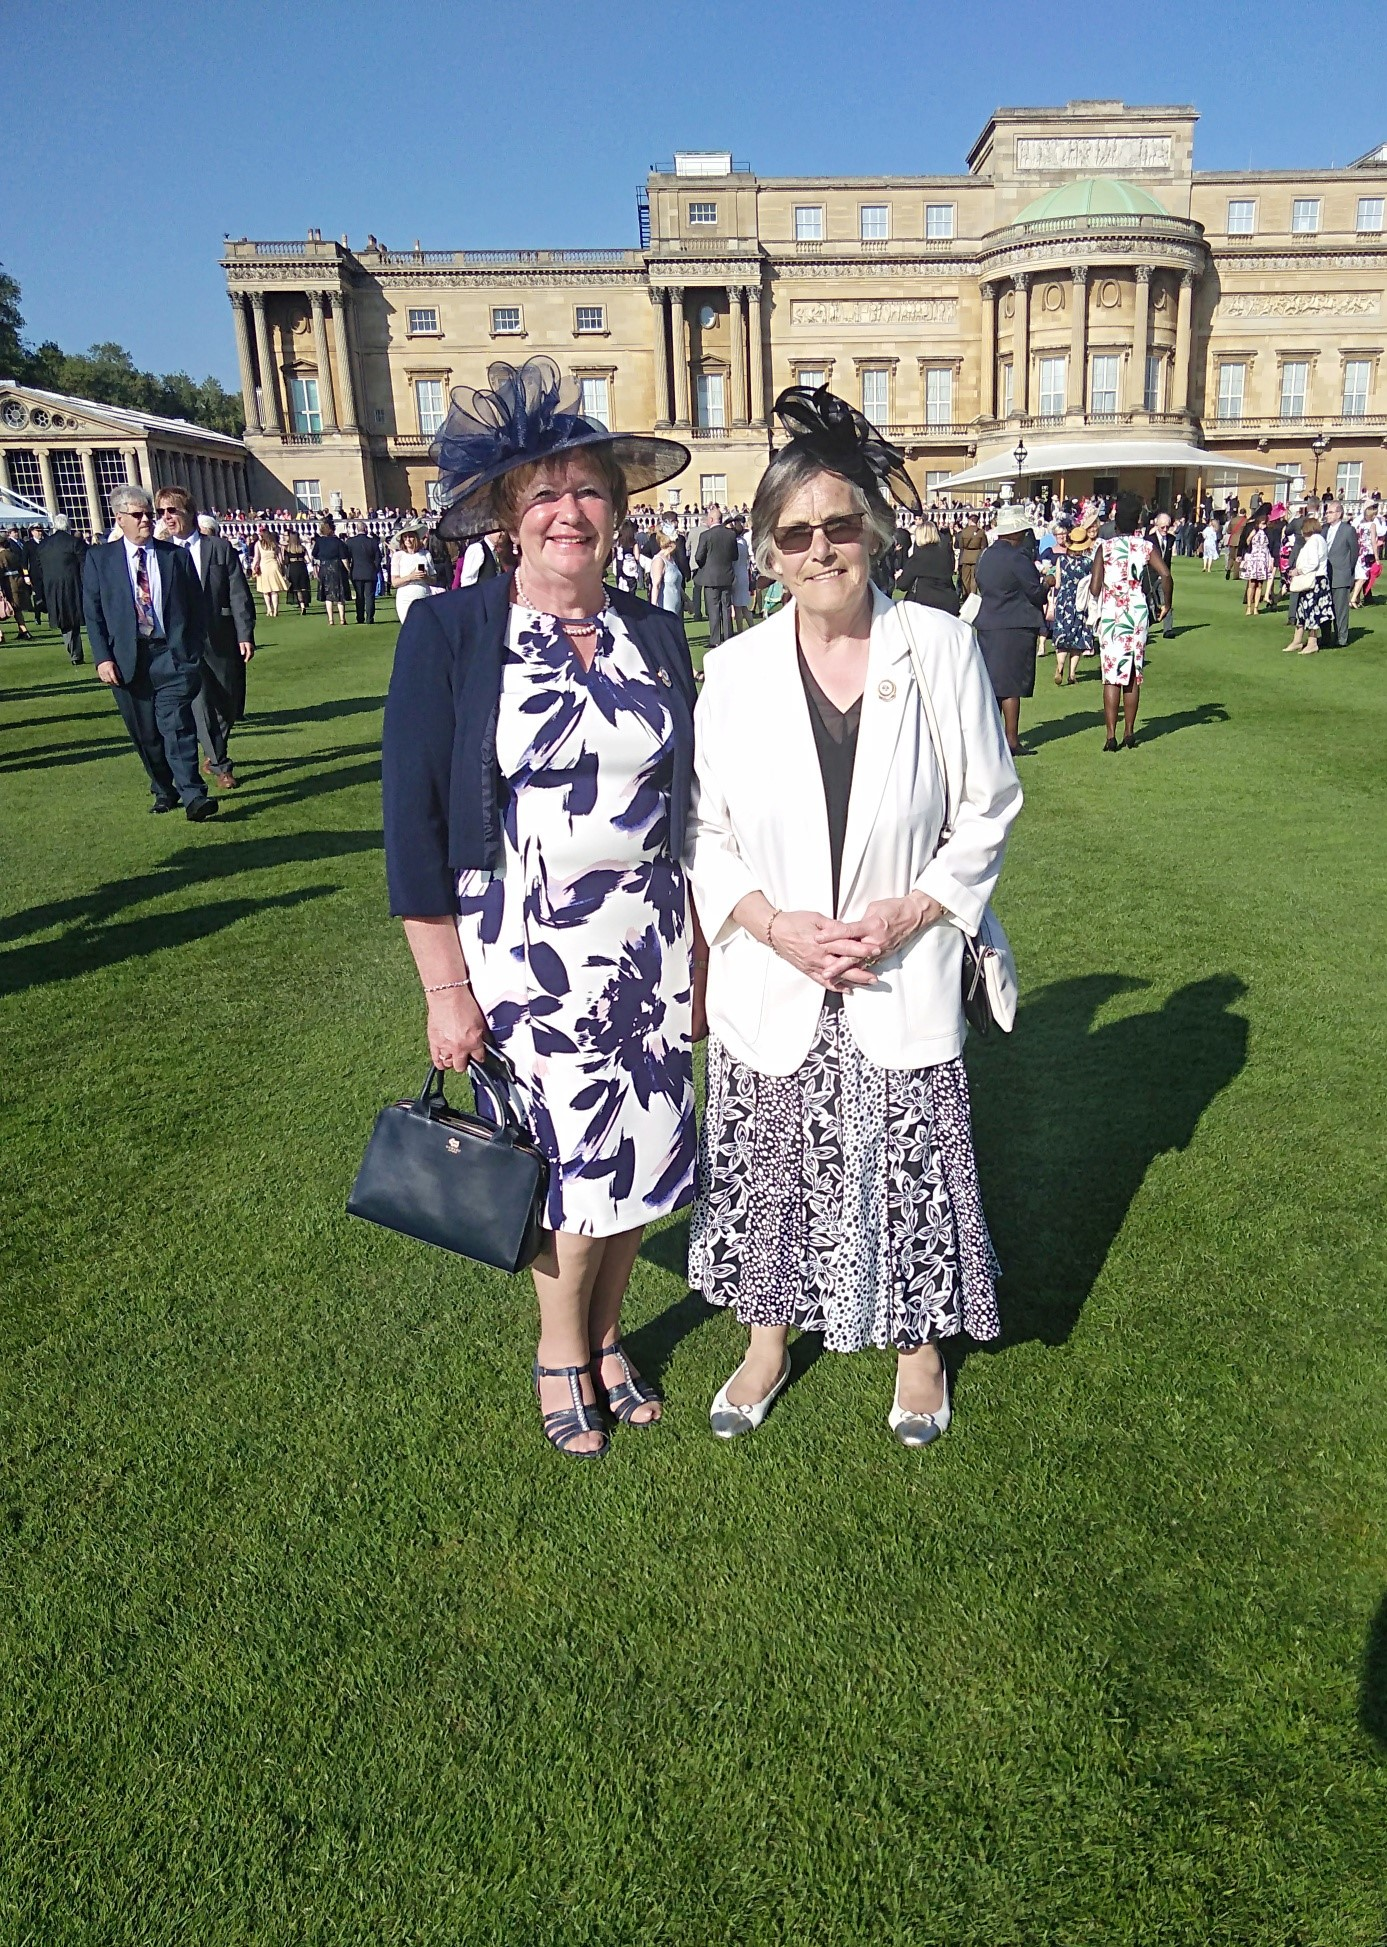 Caroline Kent and Gina Robinson at Buckingham Palace